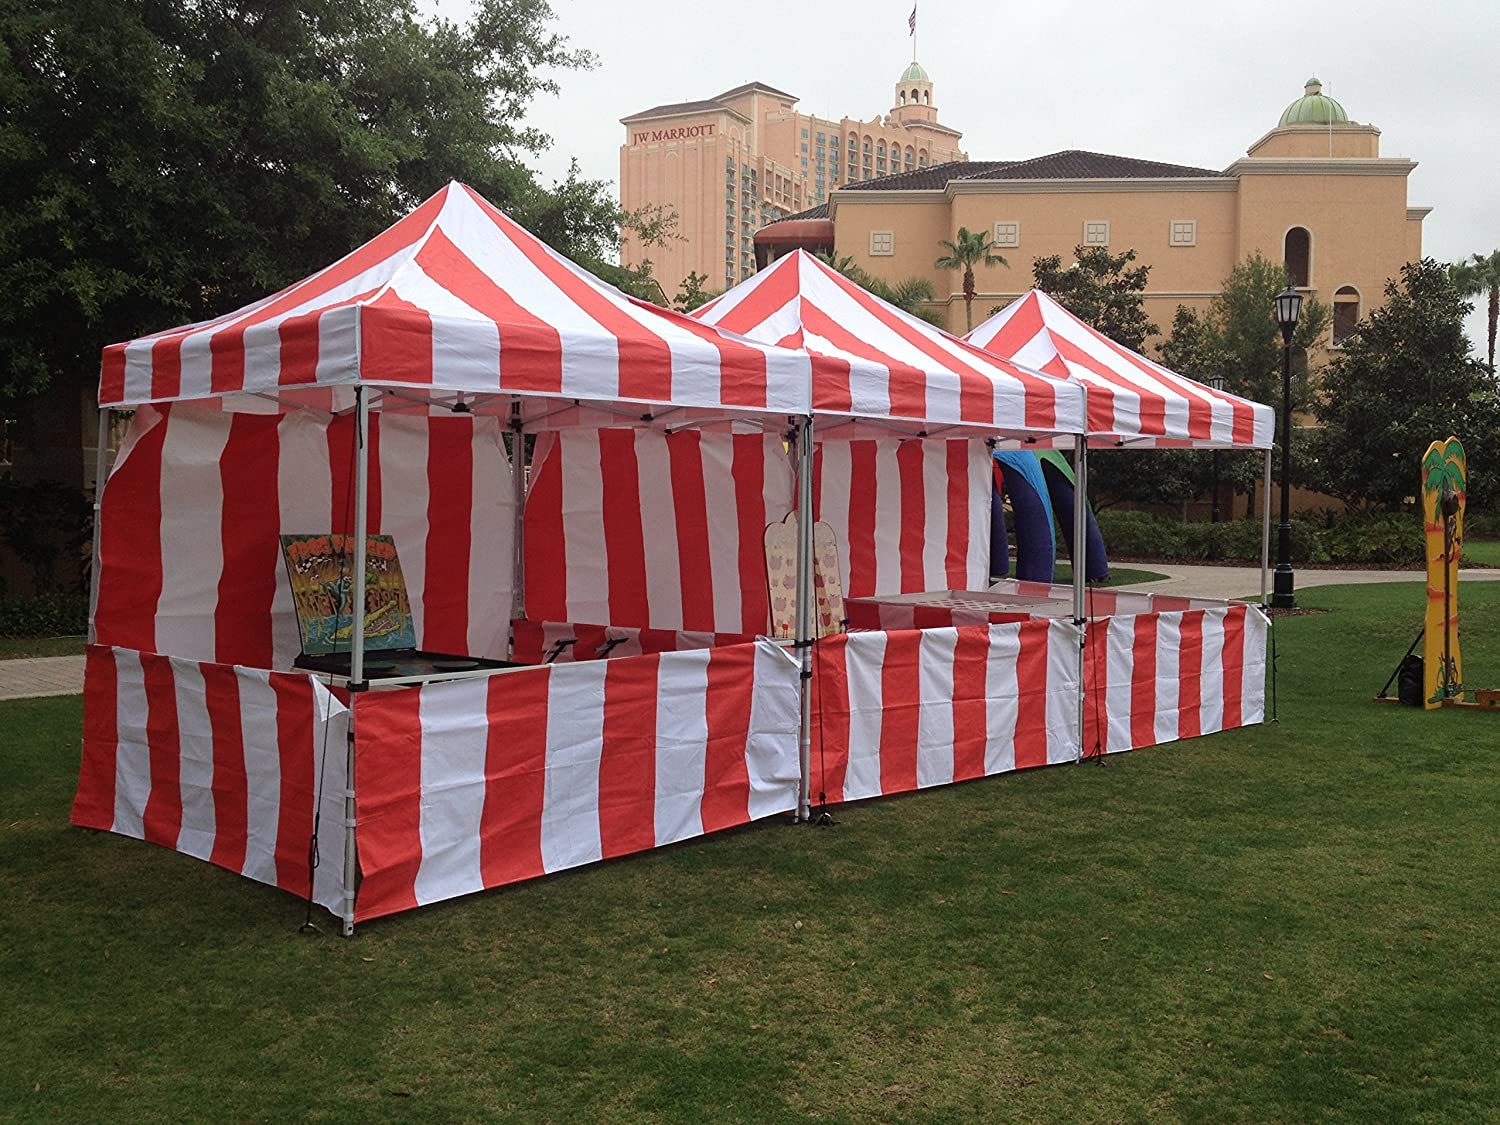 Amazon.com  Impact Canopy 8x8 EZ Pop Up Canopy Tent Carnival Vending Includes one Back Sidewall and Three Railskirts  Outdoor Canopies  Garden u0026 Outdoor & Amazon.com : Impact Canopy 8x8 EZ Pop Up Canopy Tent Carnival ...